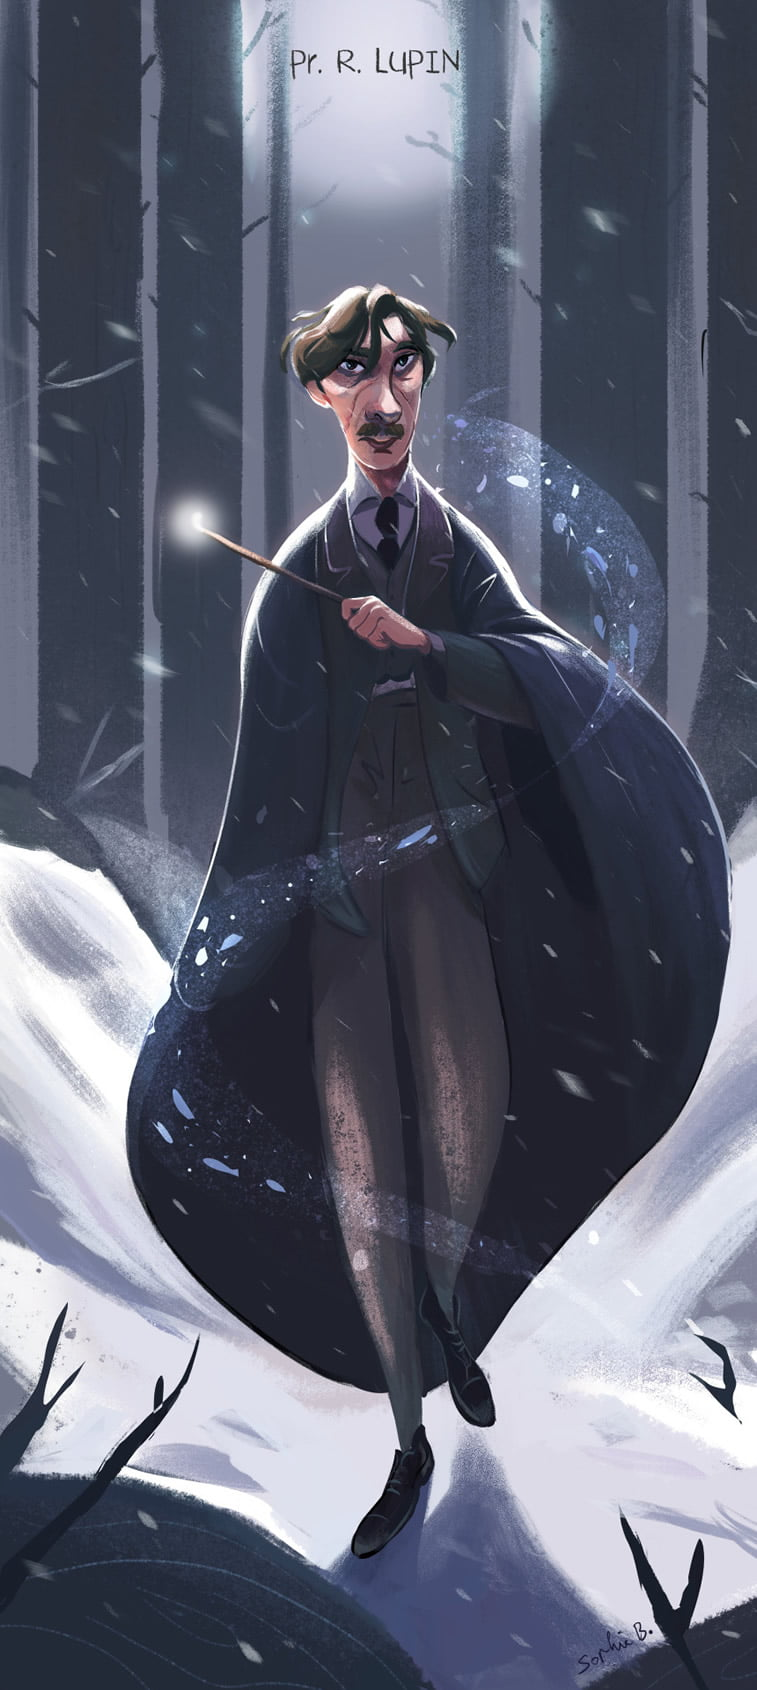 remus lupin illustration harry potter character